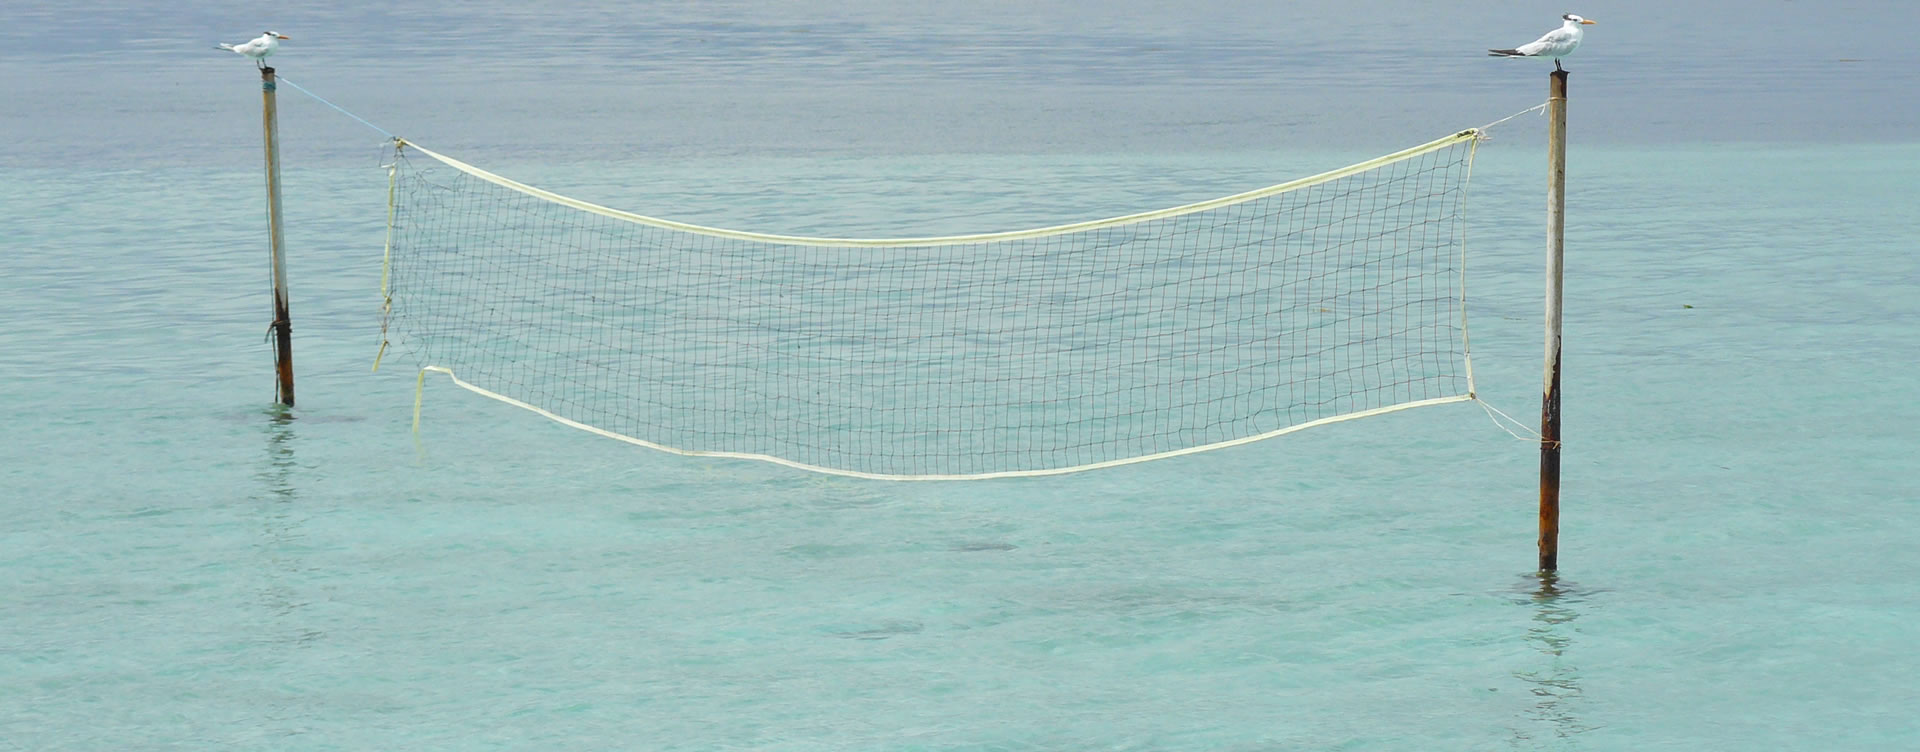 volleyball in the ocean